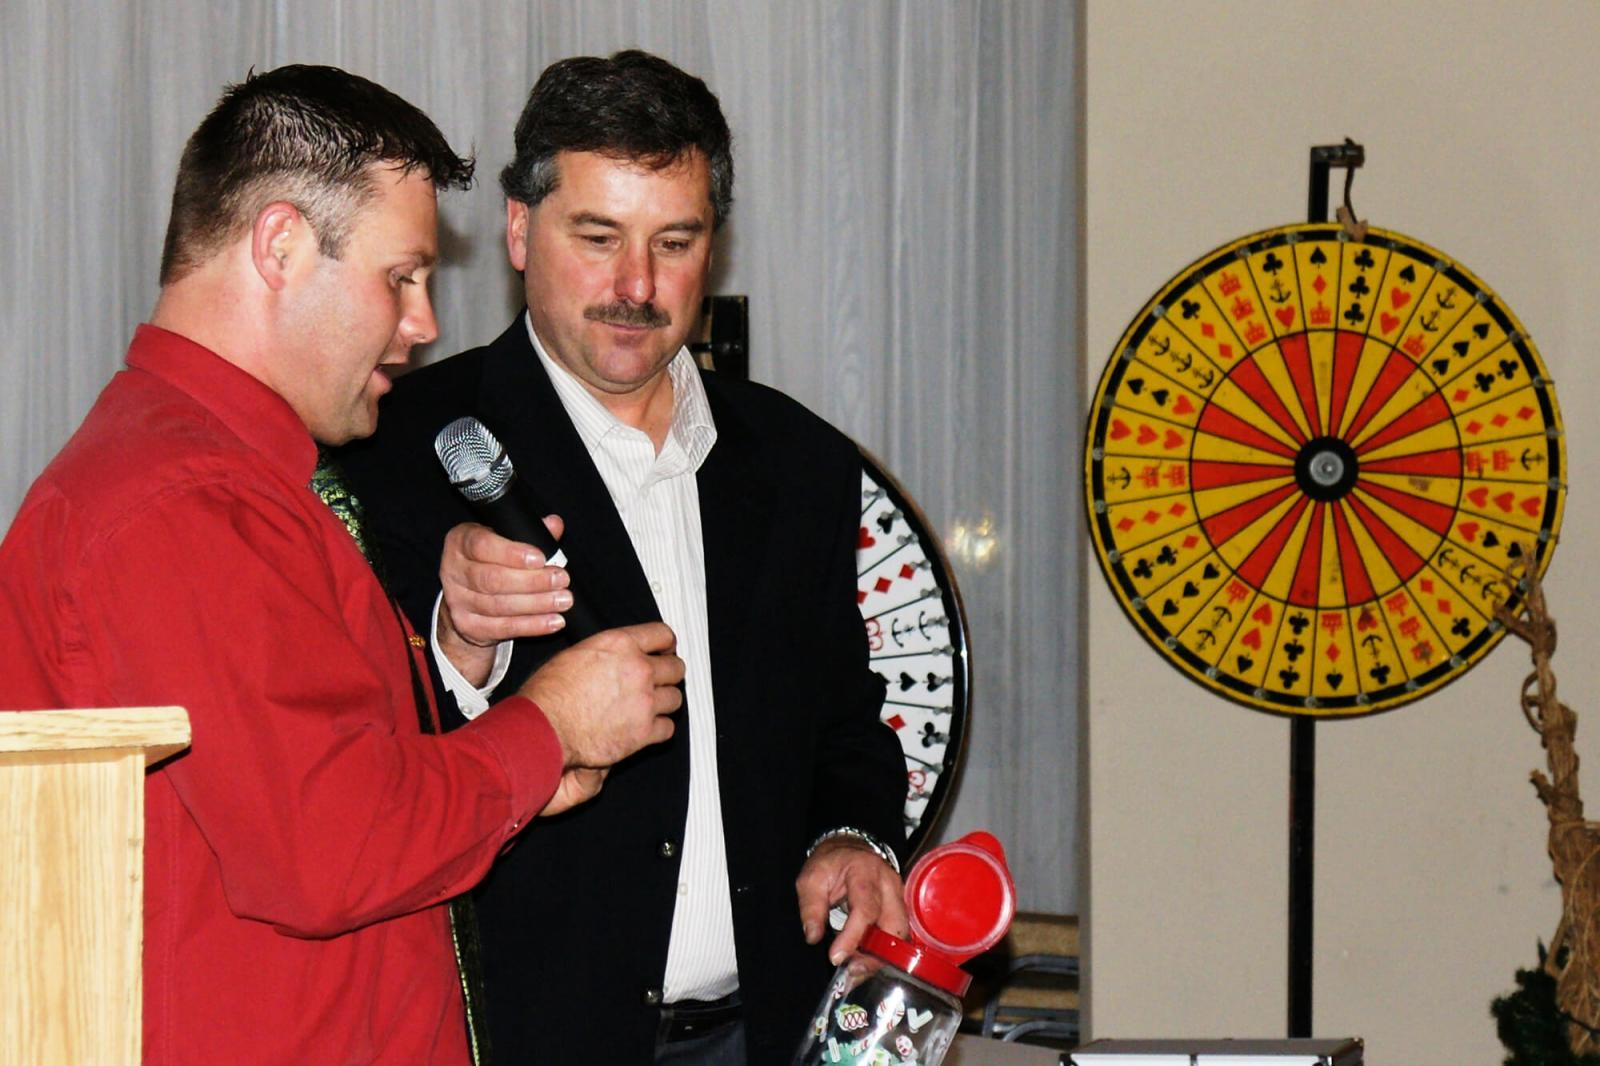 Michael LaPorte and Nick Solty helped to organize a great Christmas event for the Georgian Lakelands Chapter.